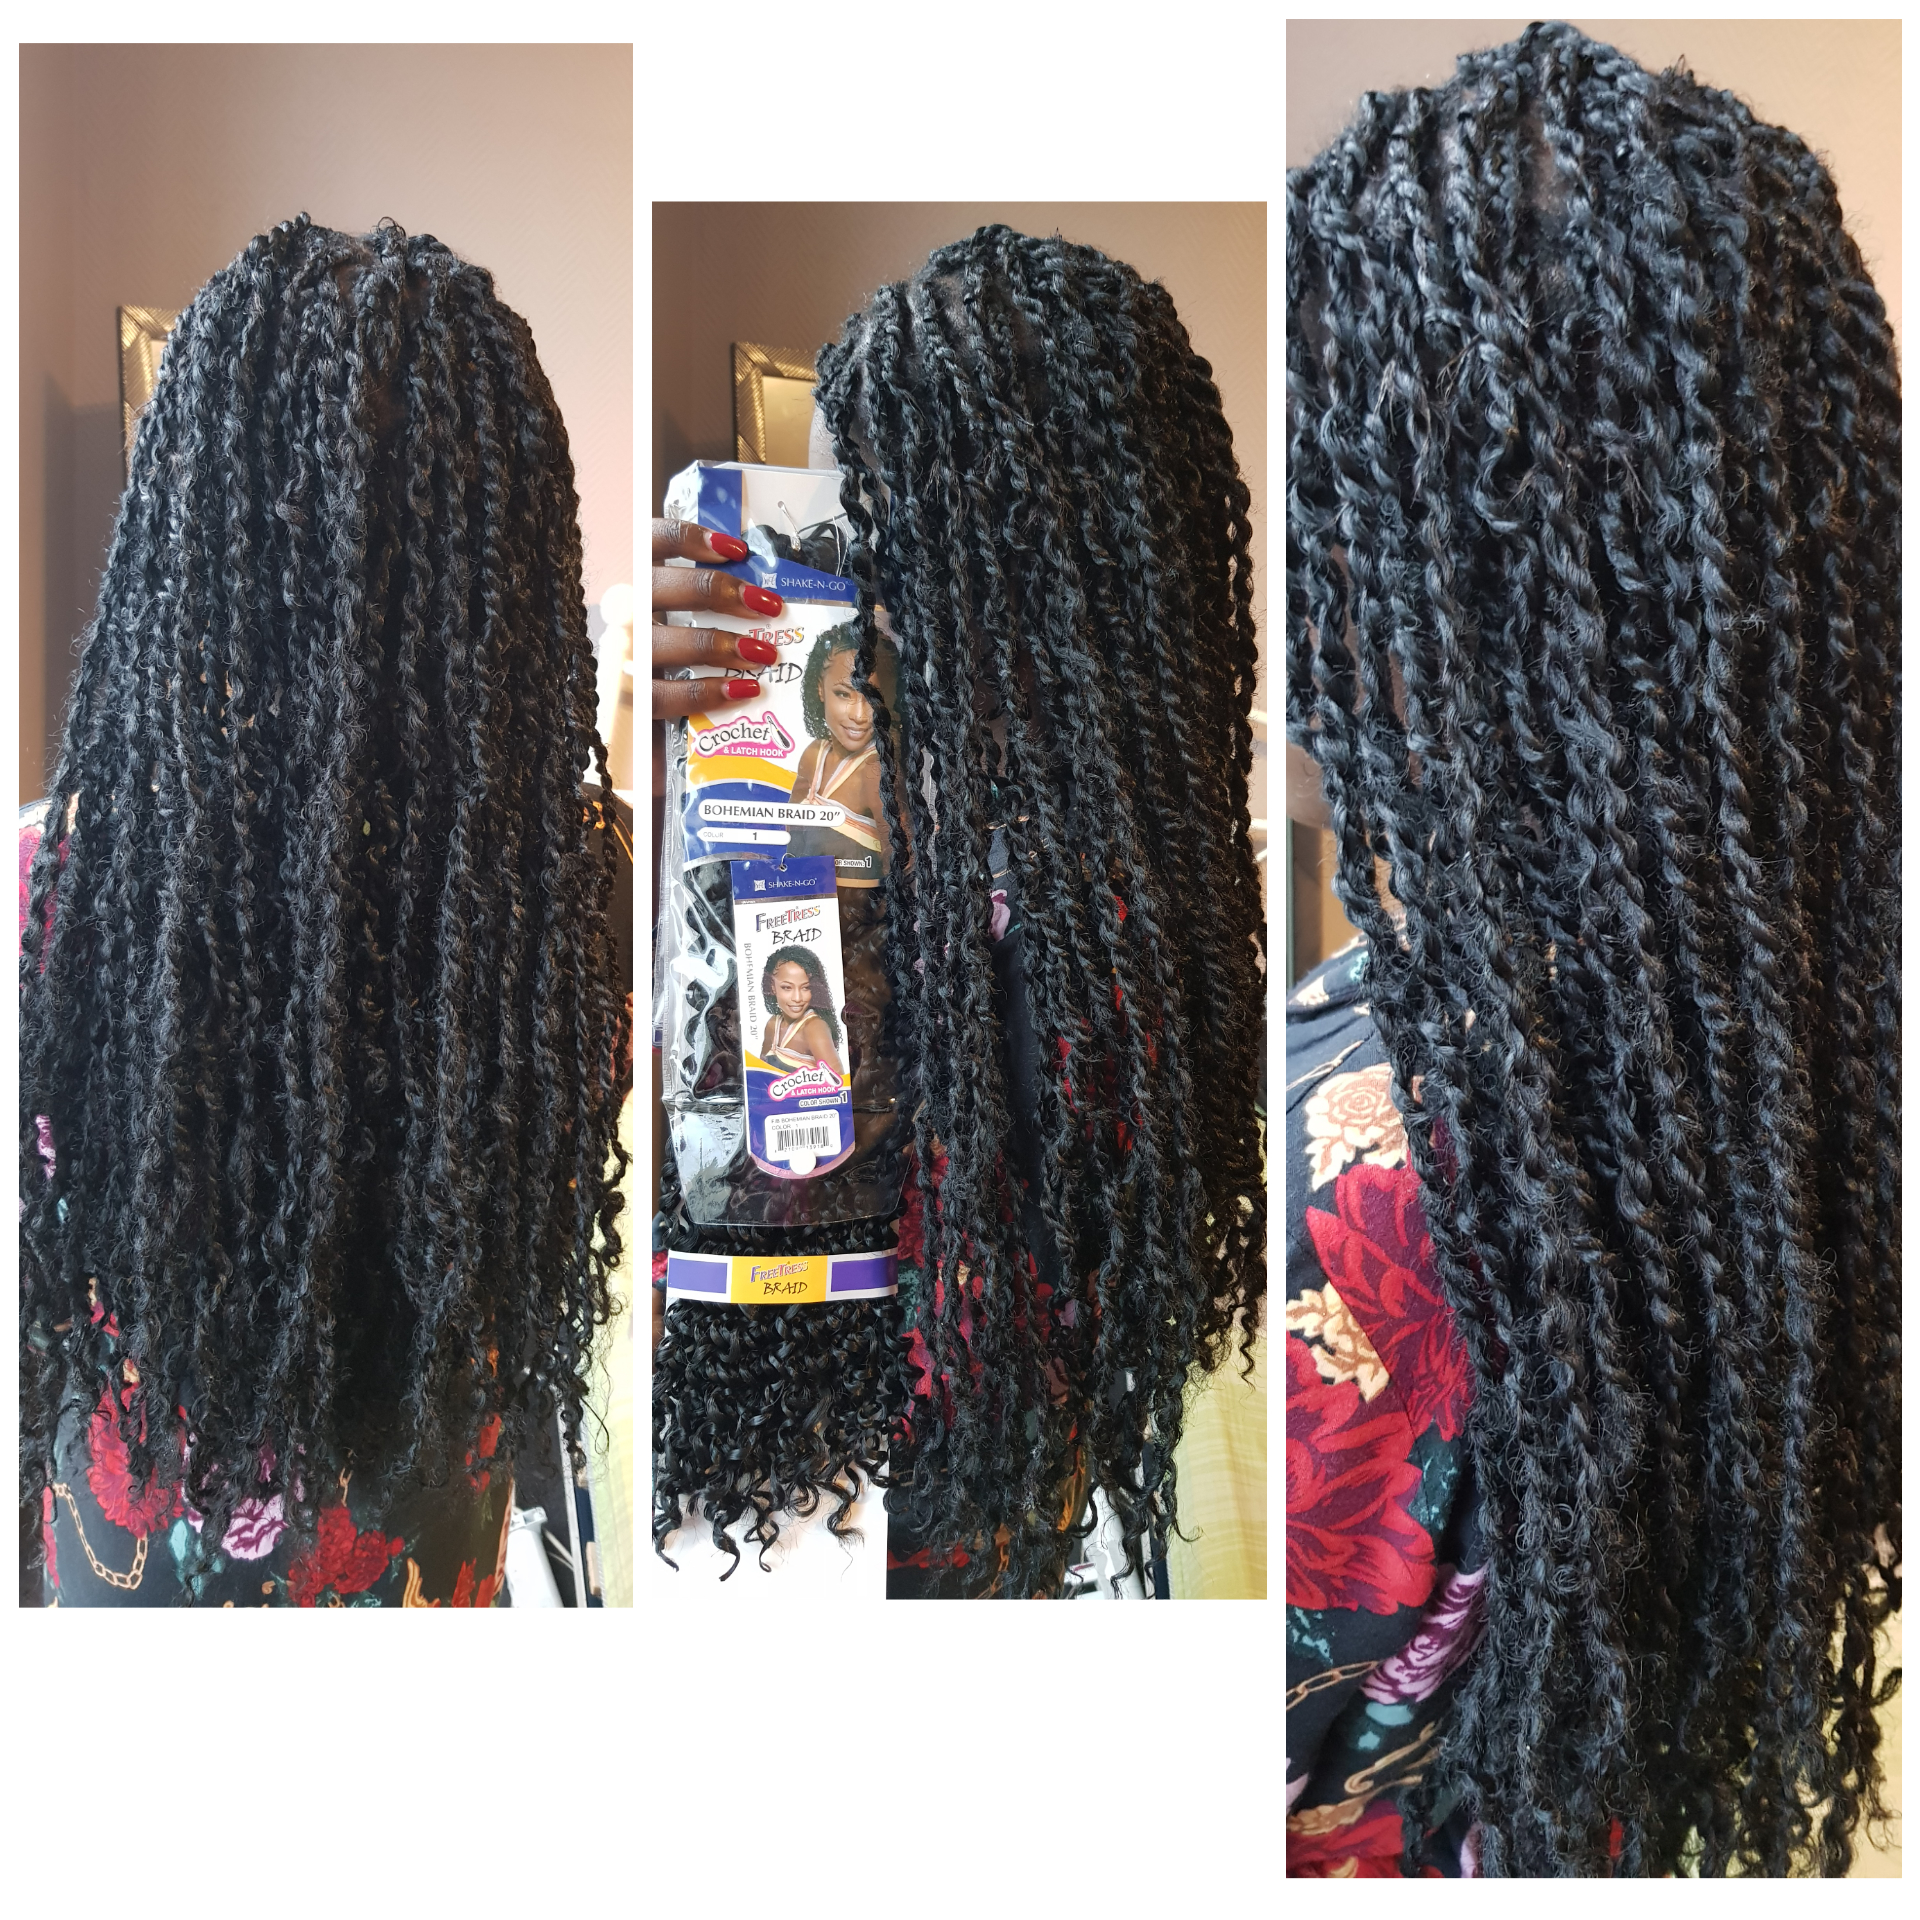 salon de coiffure afro tresse tresses box braids crochet braids vanilles tissages paris 75 77 78 91 92 93 94 95 VONBMVRE